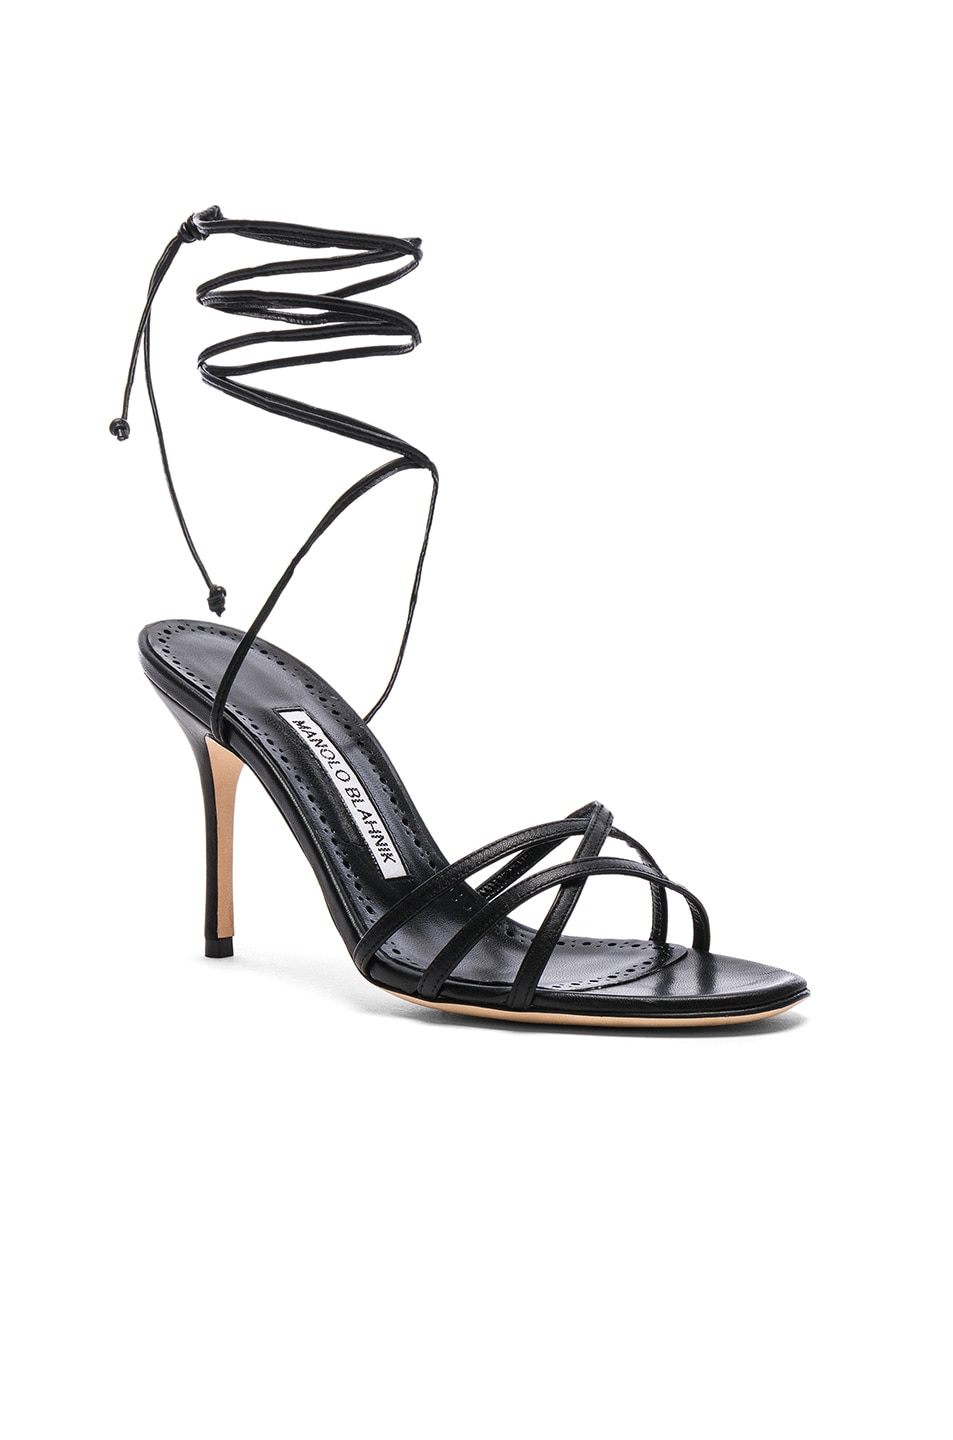 Manolo Blahnik Leather Leva 90 Sandals in . 5OIoDgs